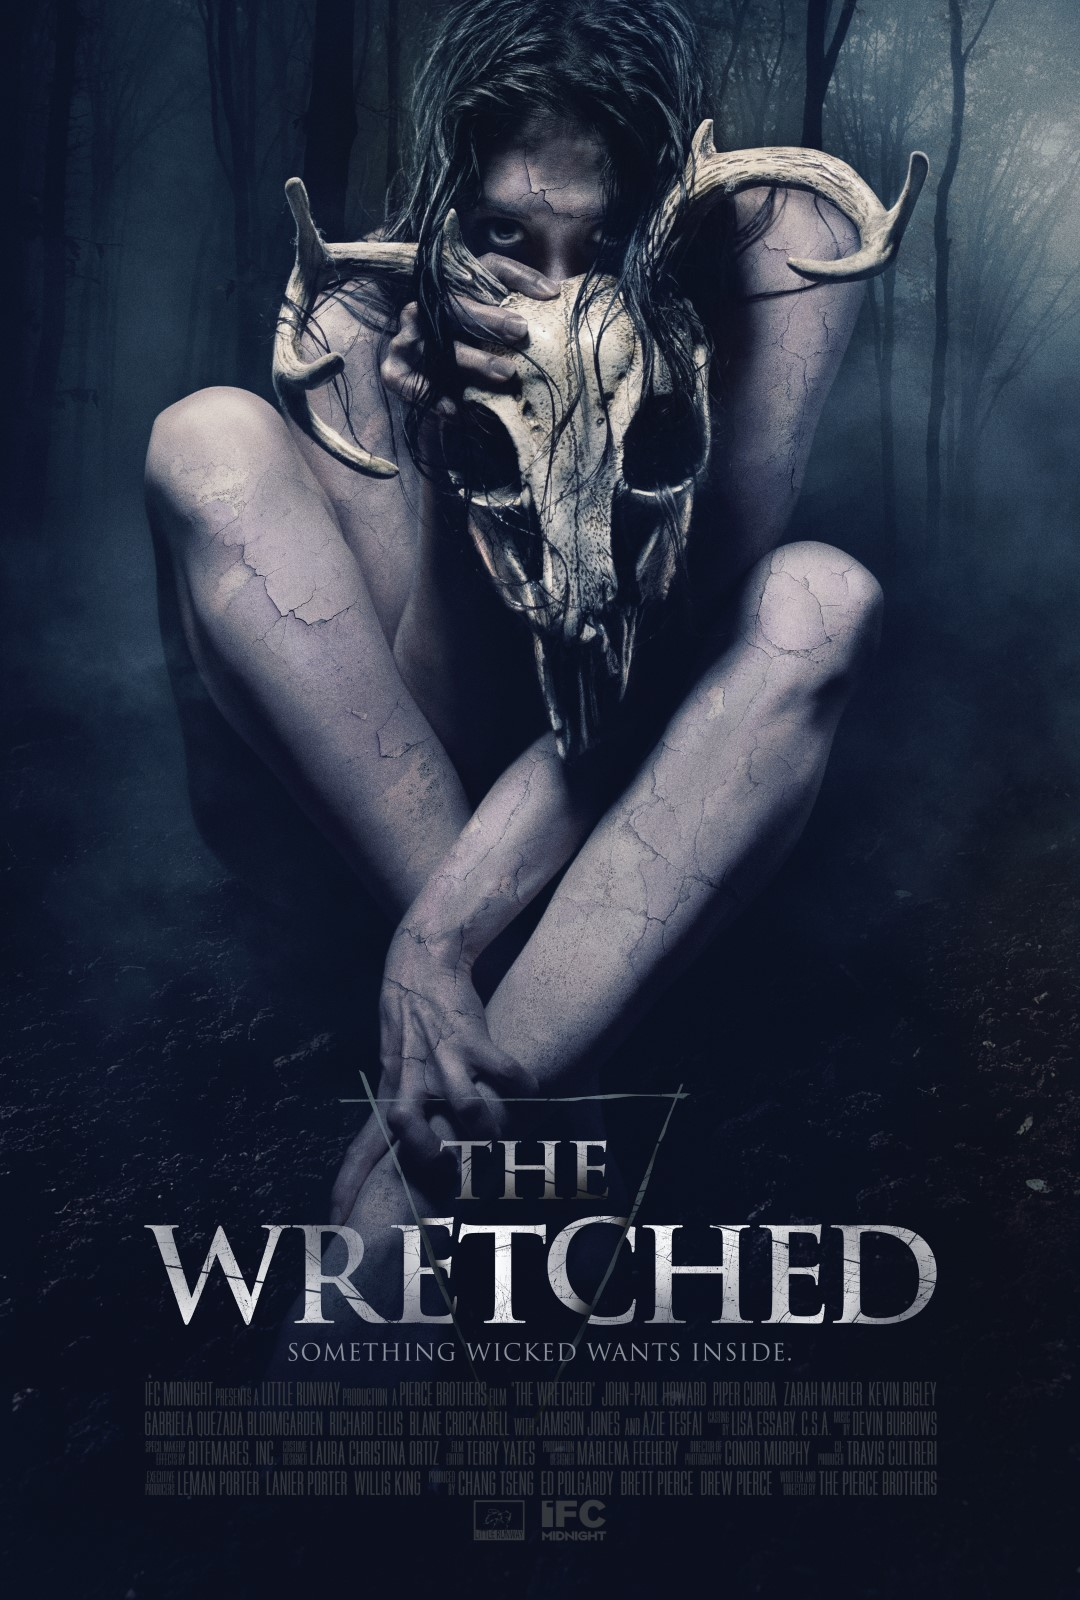 Preestreno: Madre oscura (The Wretched)